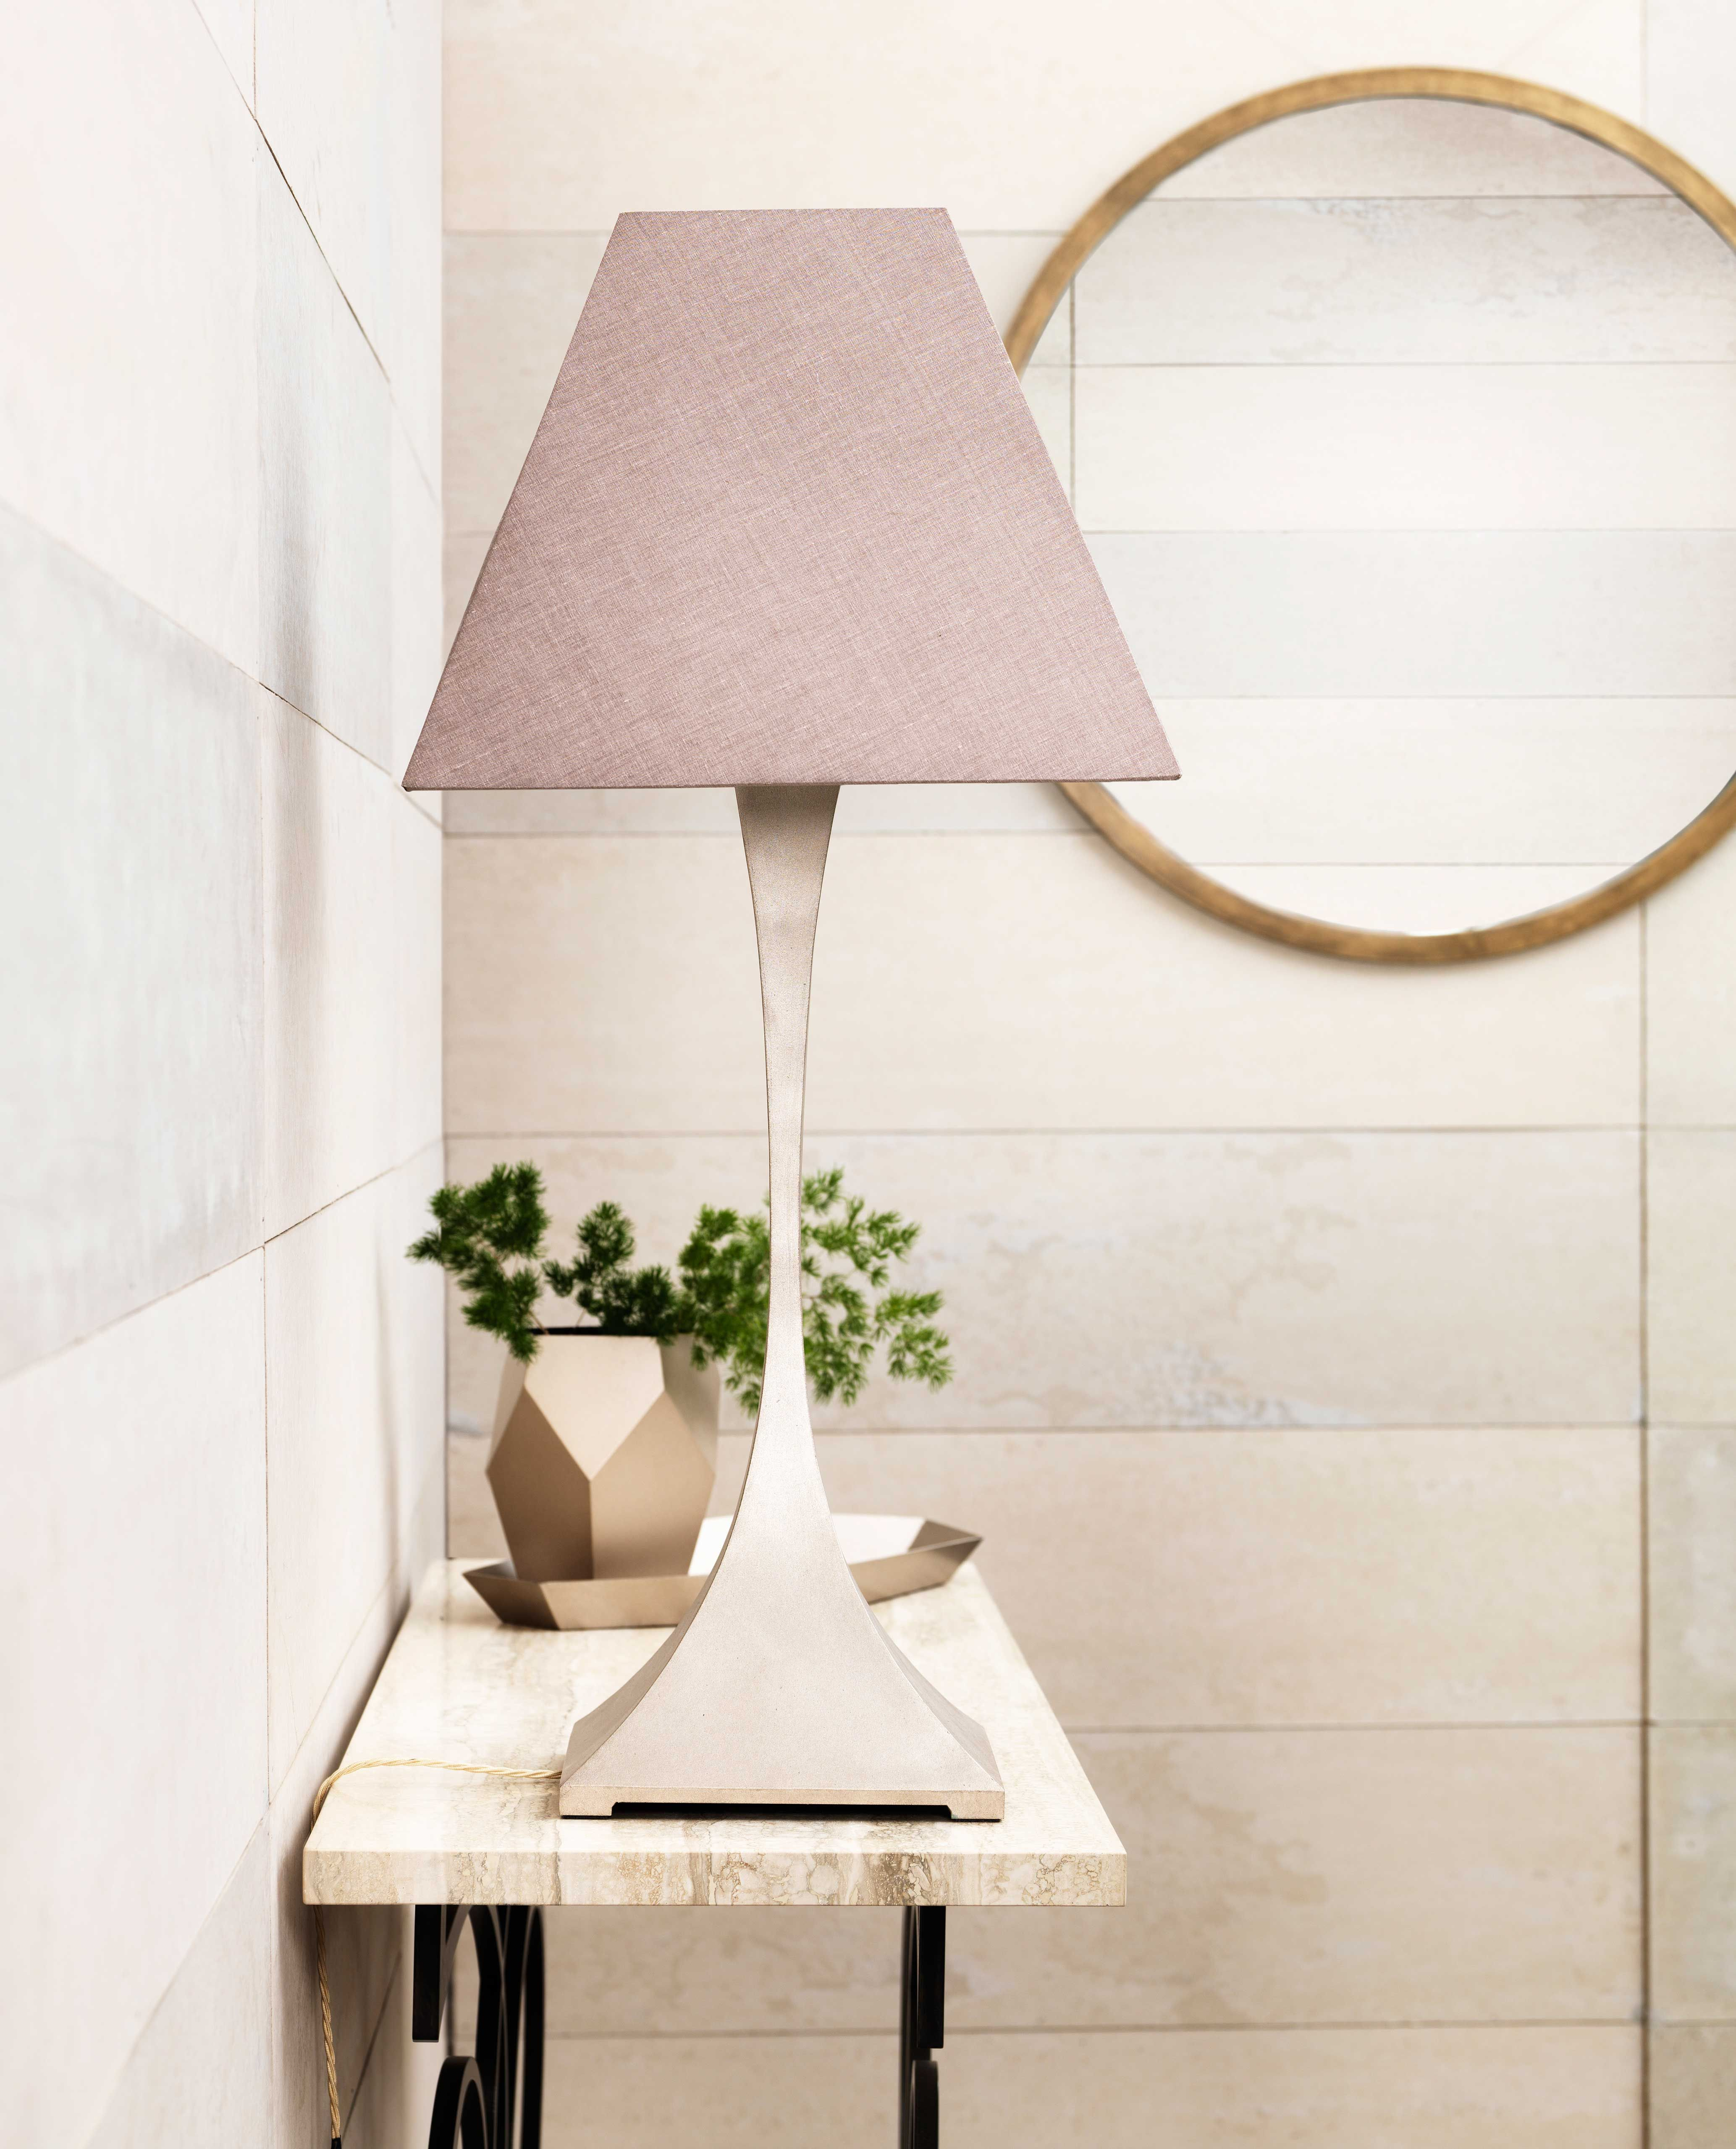 Capricorn table lamp in Pink Silver, Madison round mirror in Antique Bronze and faceted metal vase.